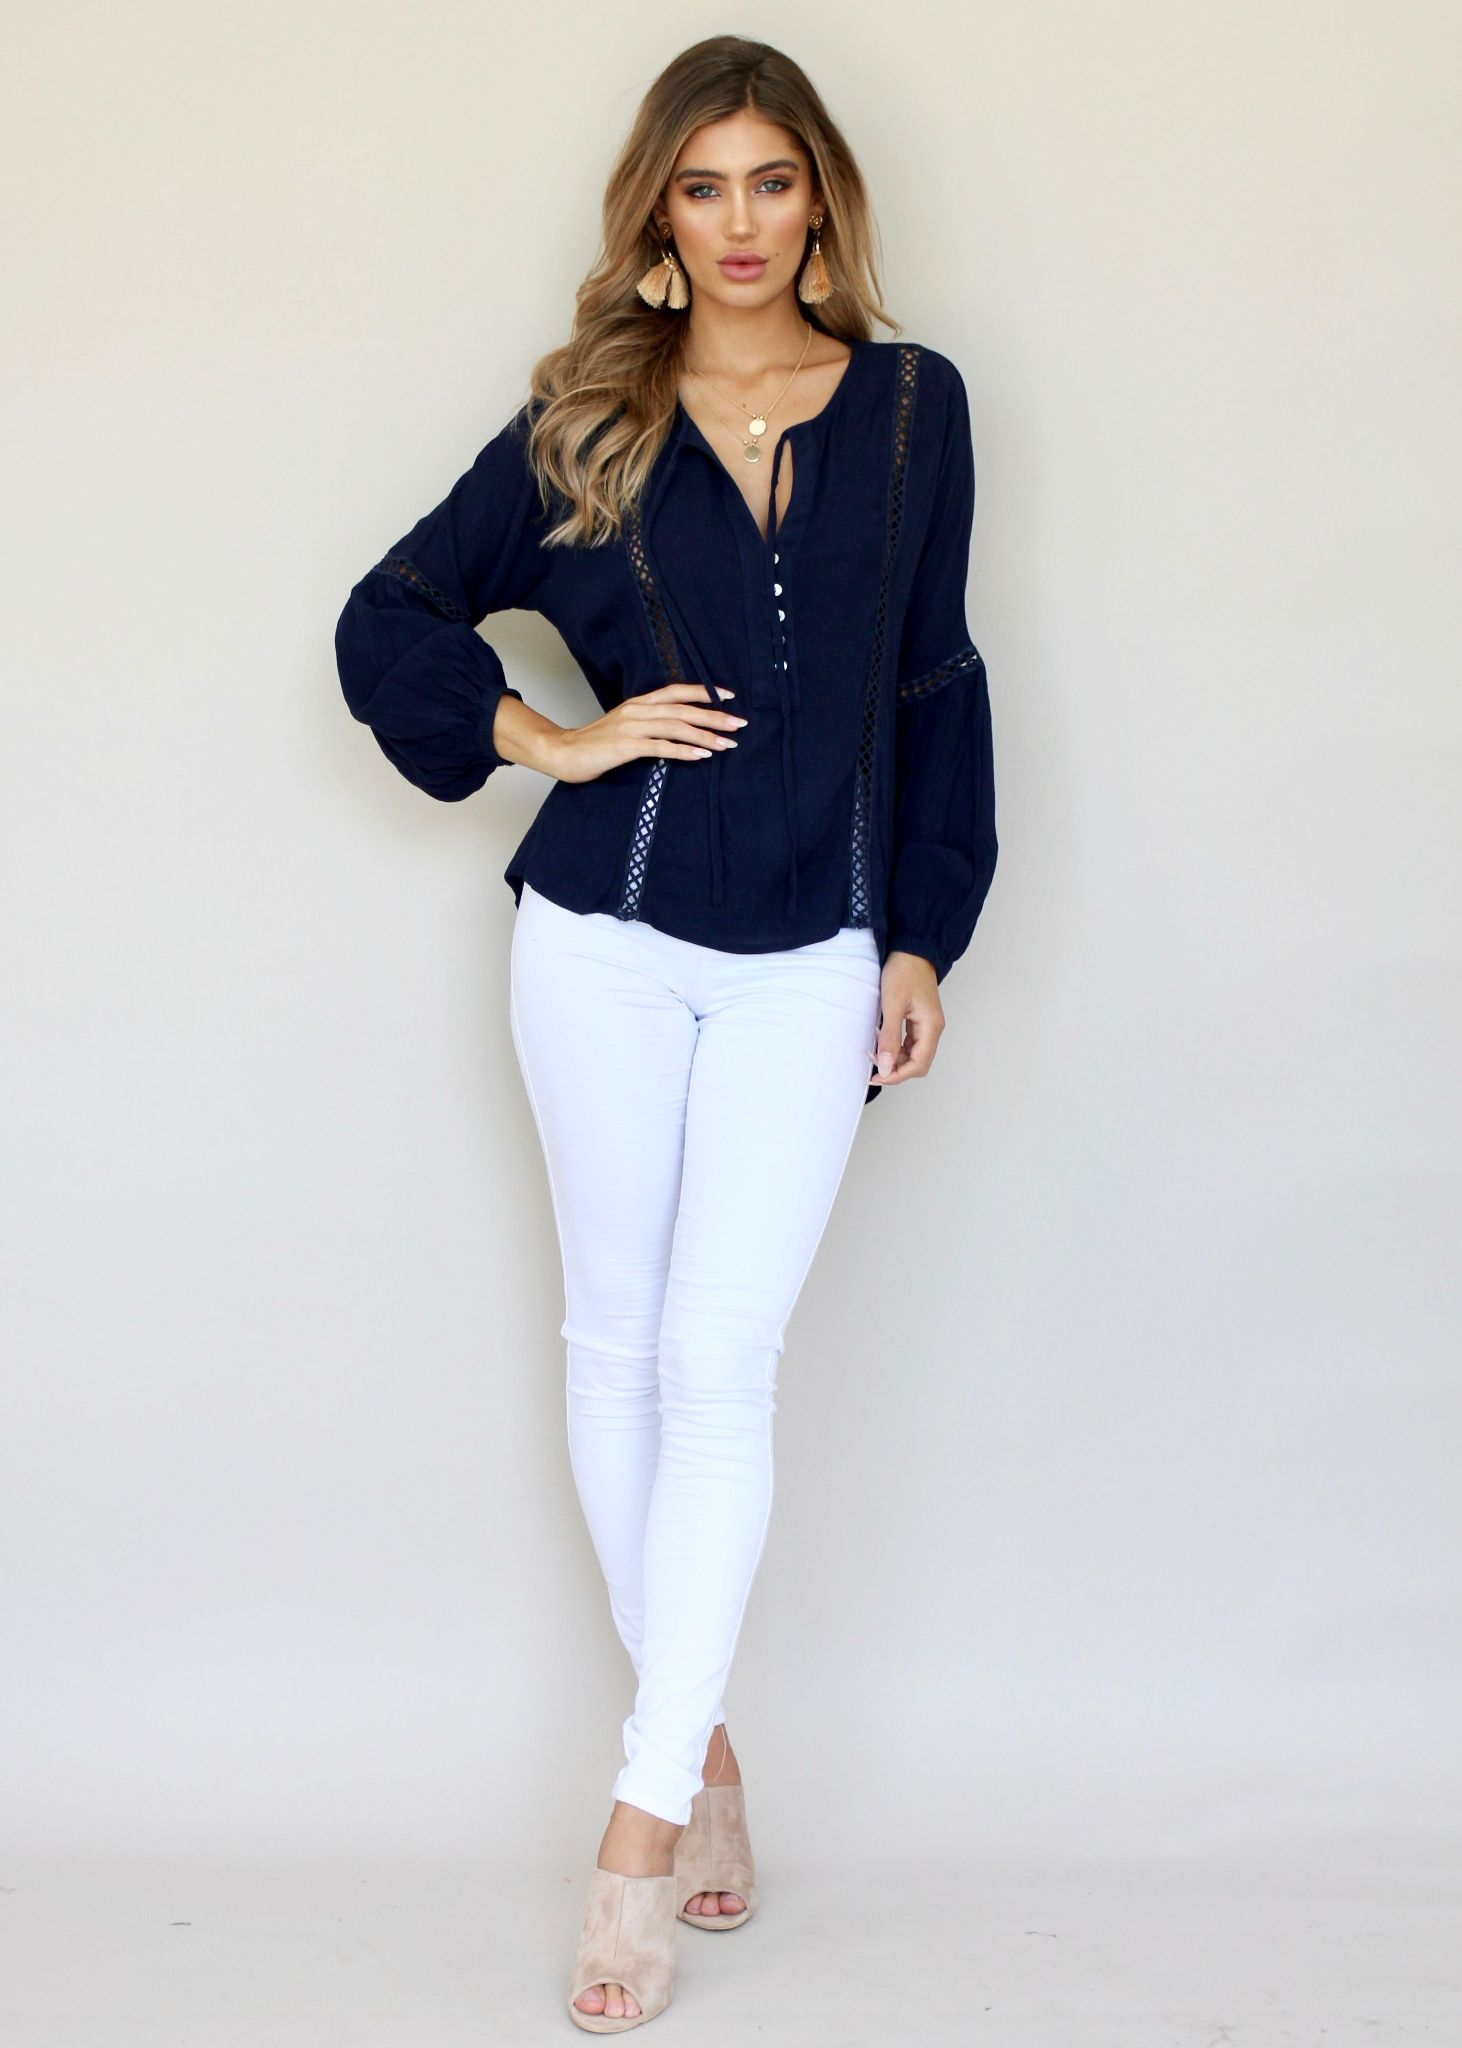 Keep A Secret Blouse - Navy